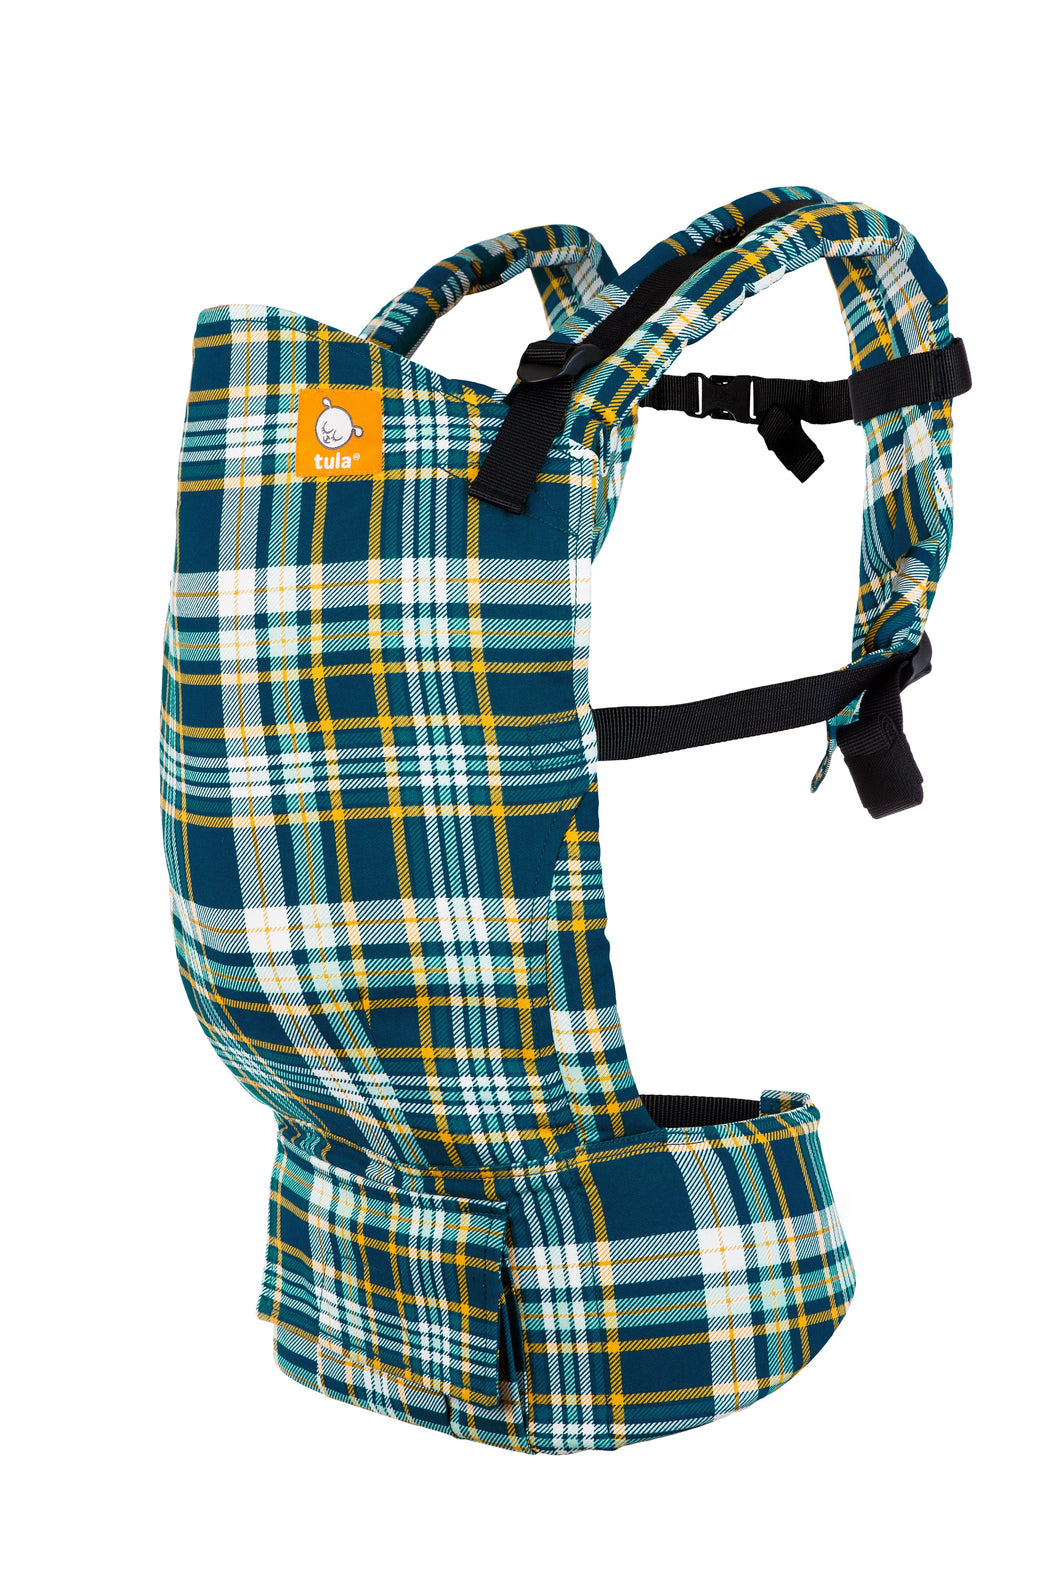 Skylar - Tula Toddler Carrier